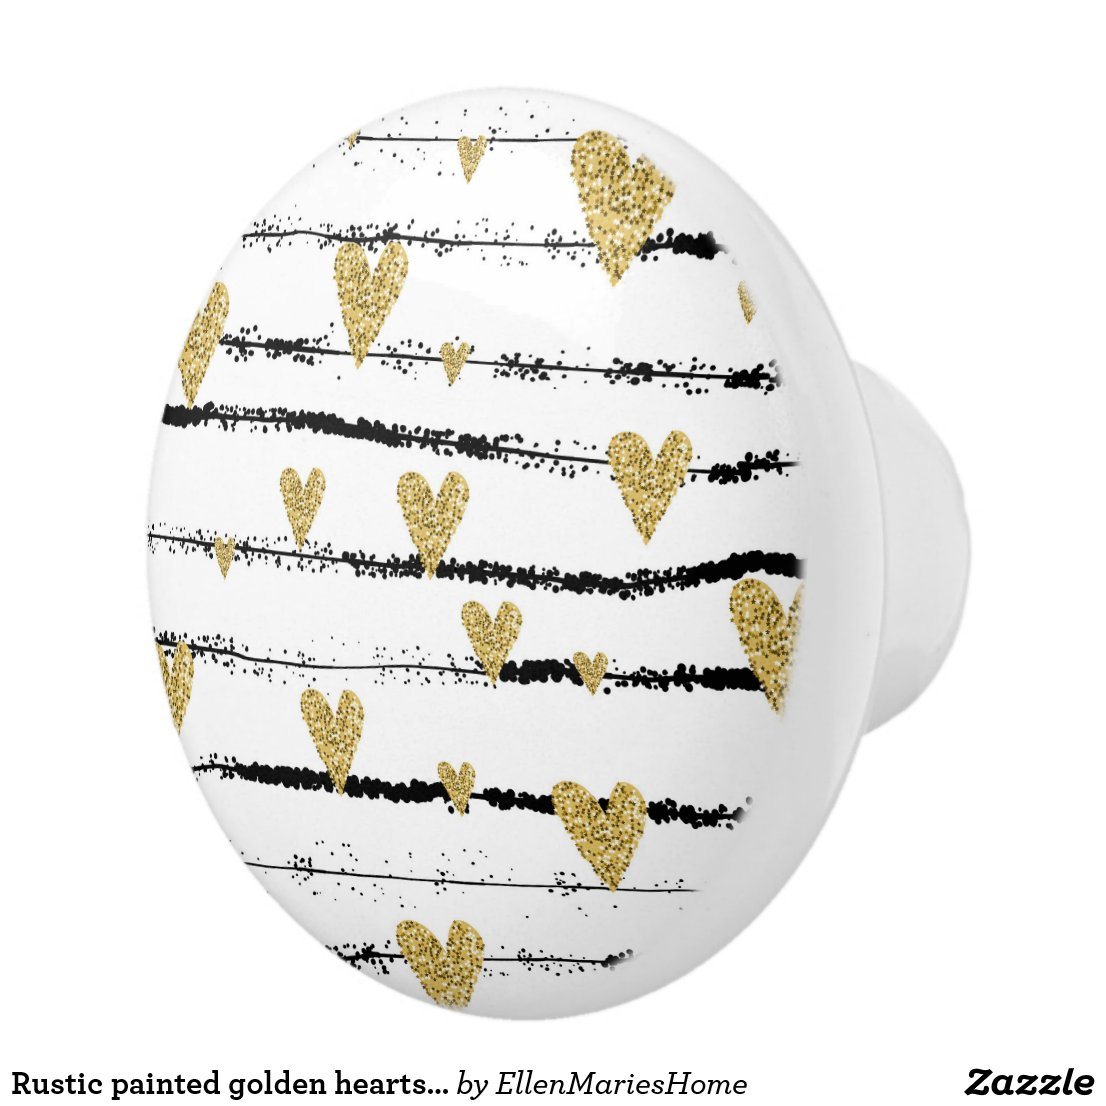 Rustic painted golden hearts on black stripes ceramic knob